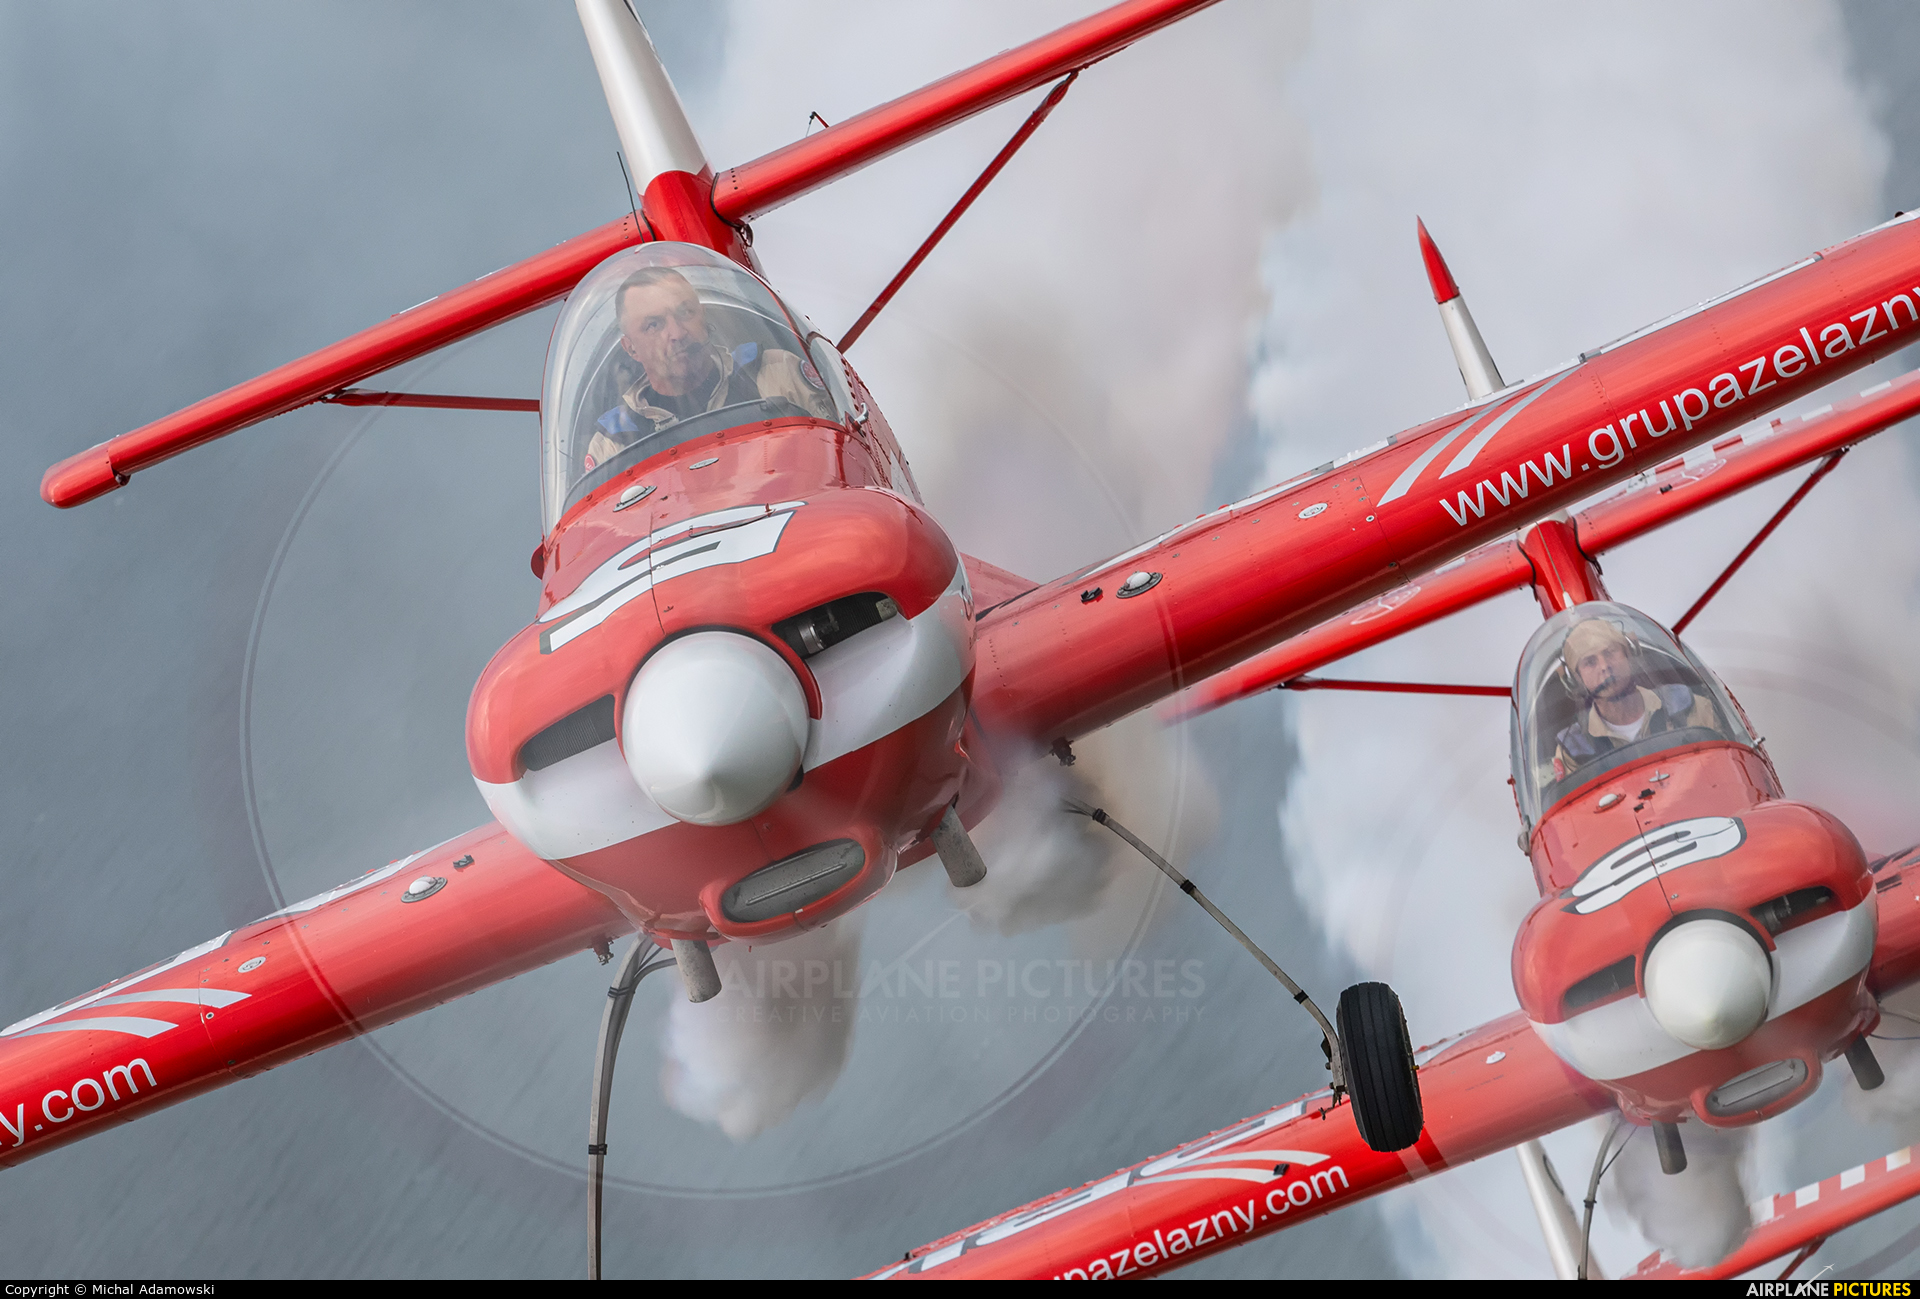 Grupa Akrobacyjna Żelazny - Acrobatic Group SP-AUD aircraft at In Flight - Poland